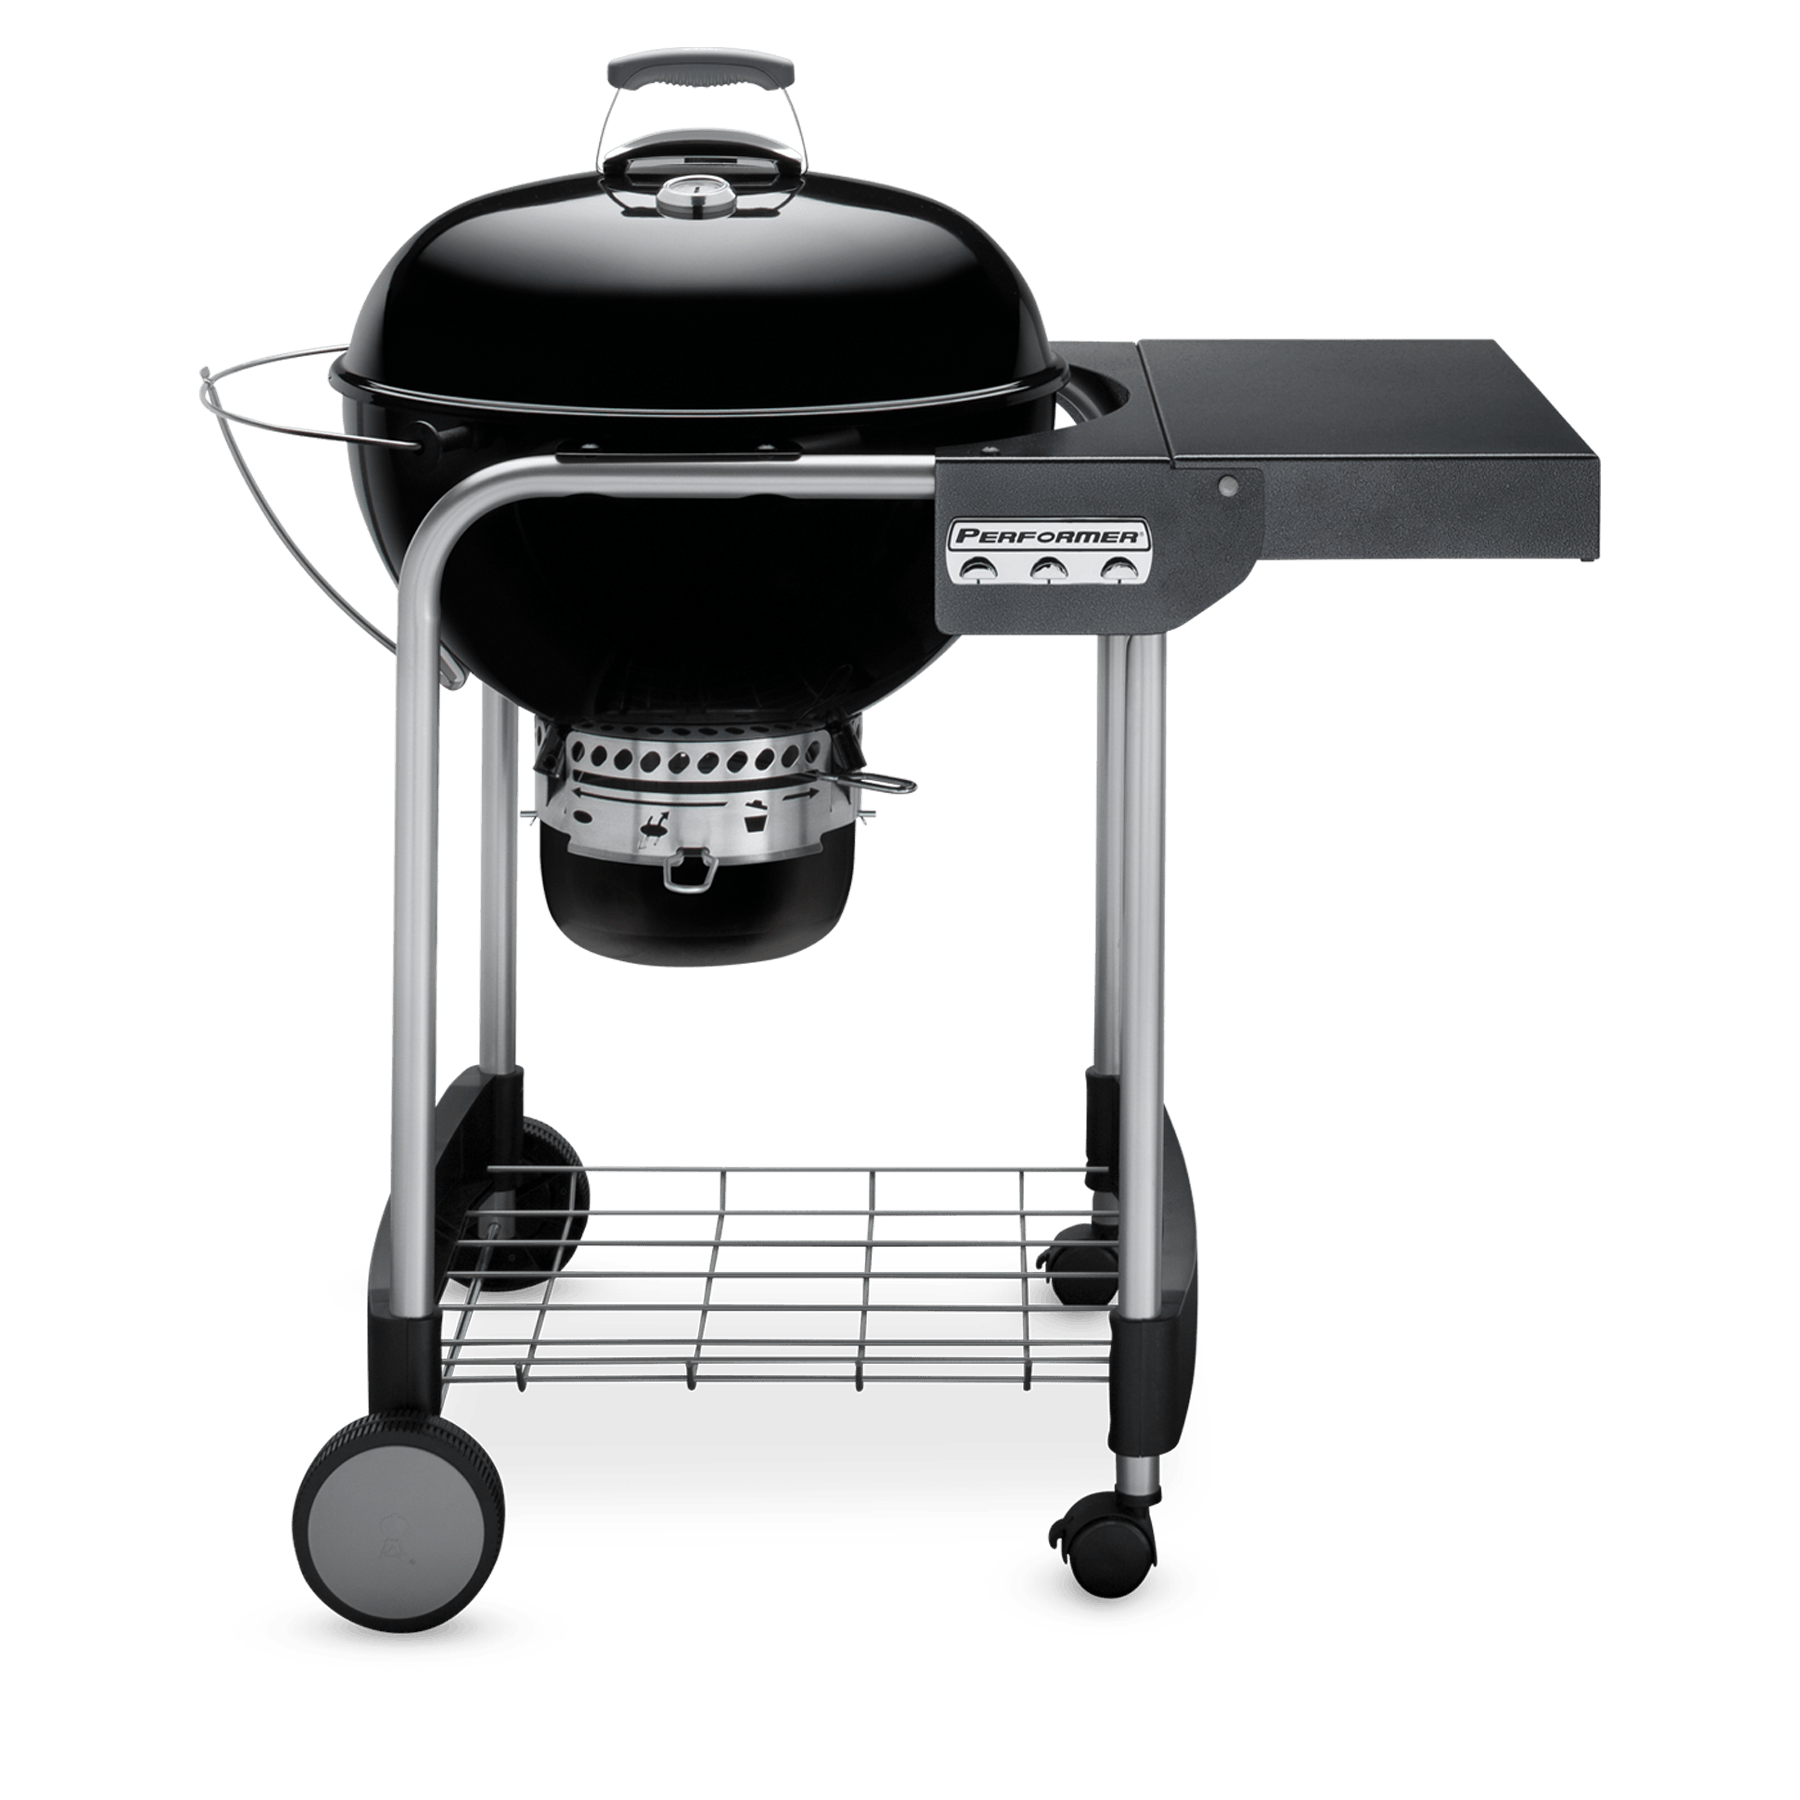 Performer GBS Kulgrill 57 cm